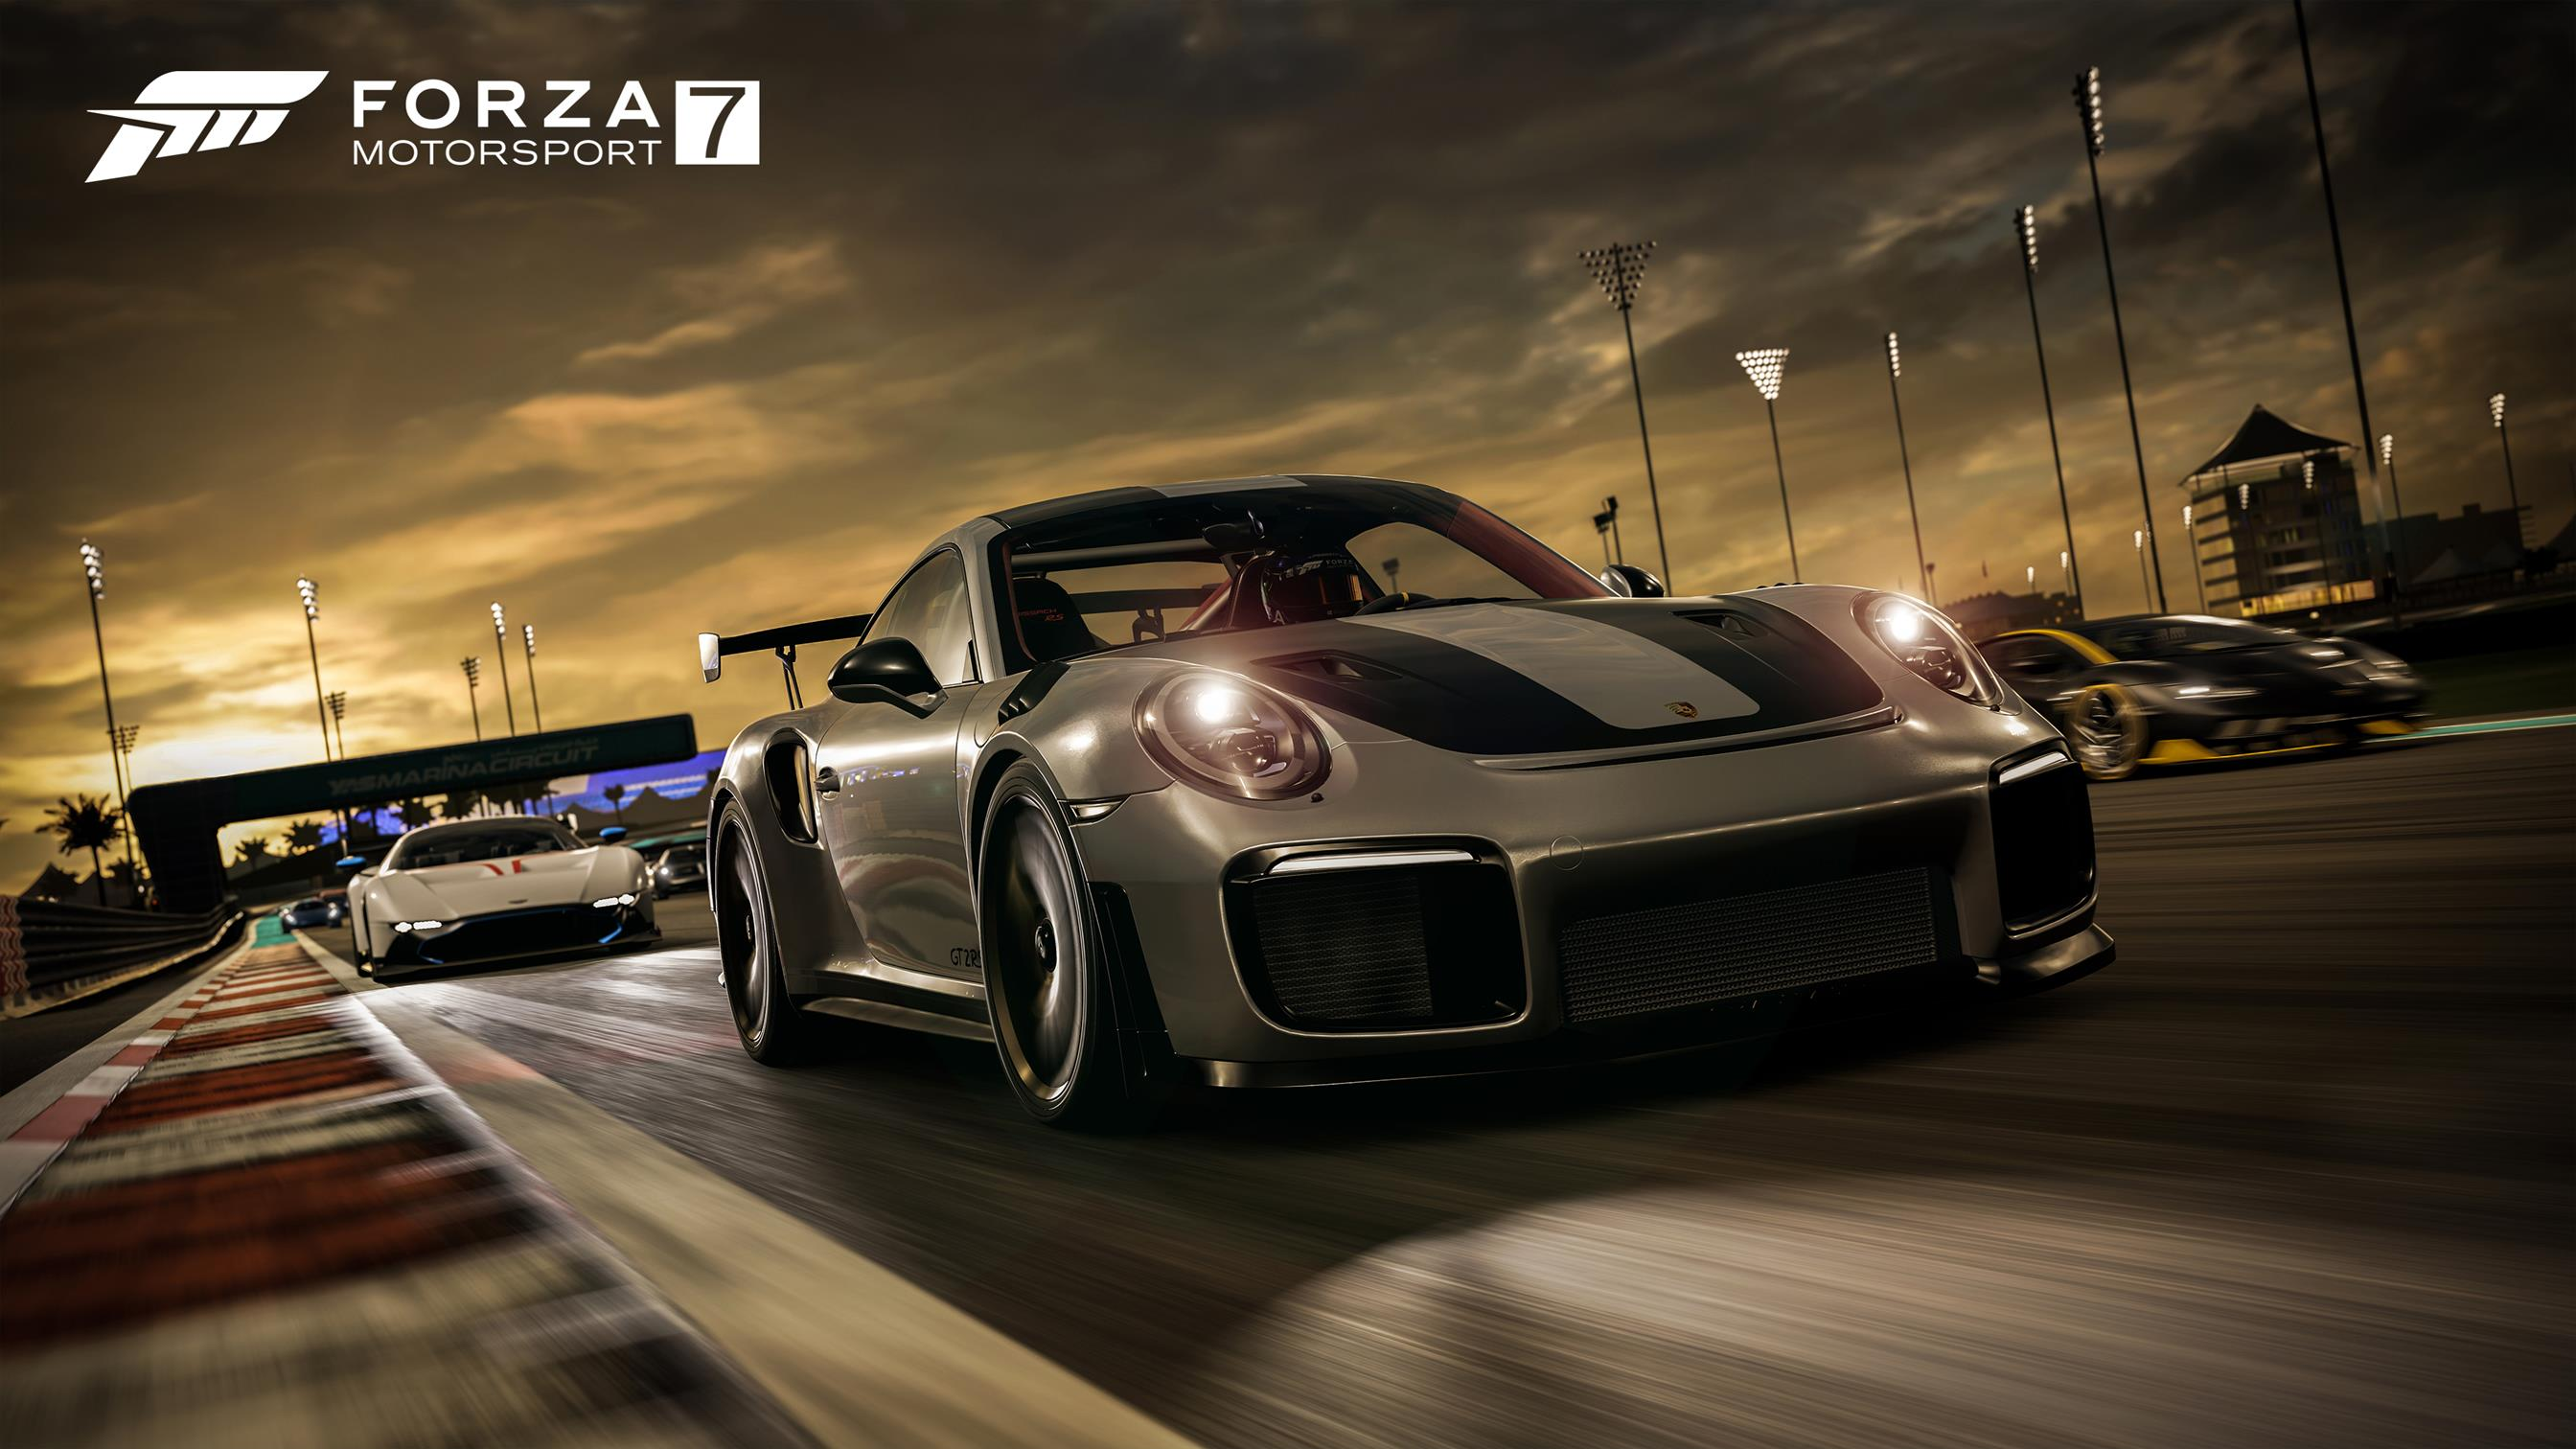 forza 7 lowers minimum pc specs pc demo confirmed vg247. Black Bedroom Furniture Sets. Home Design Ideas